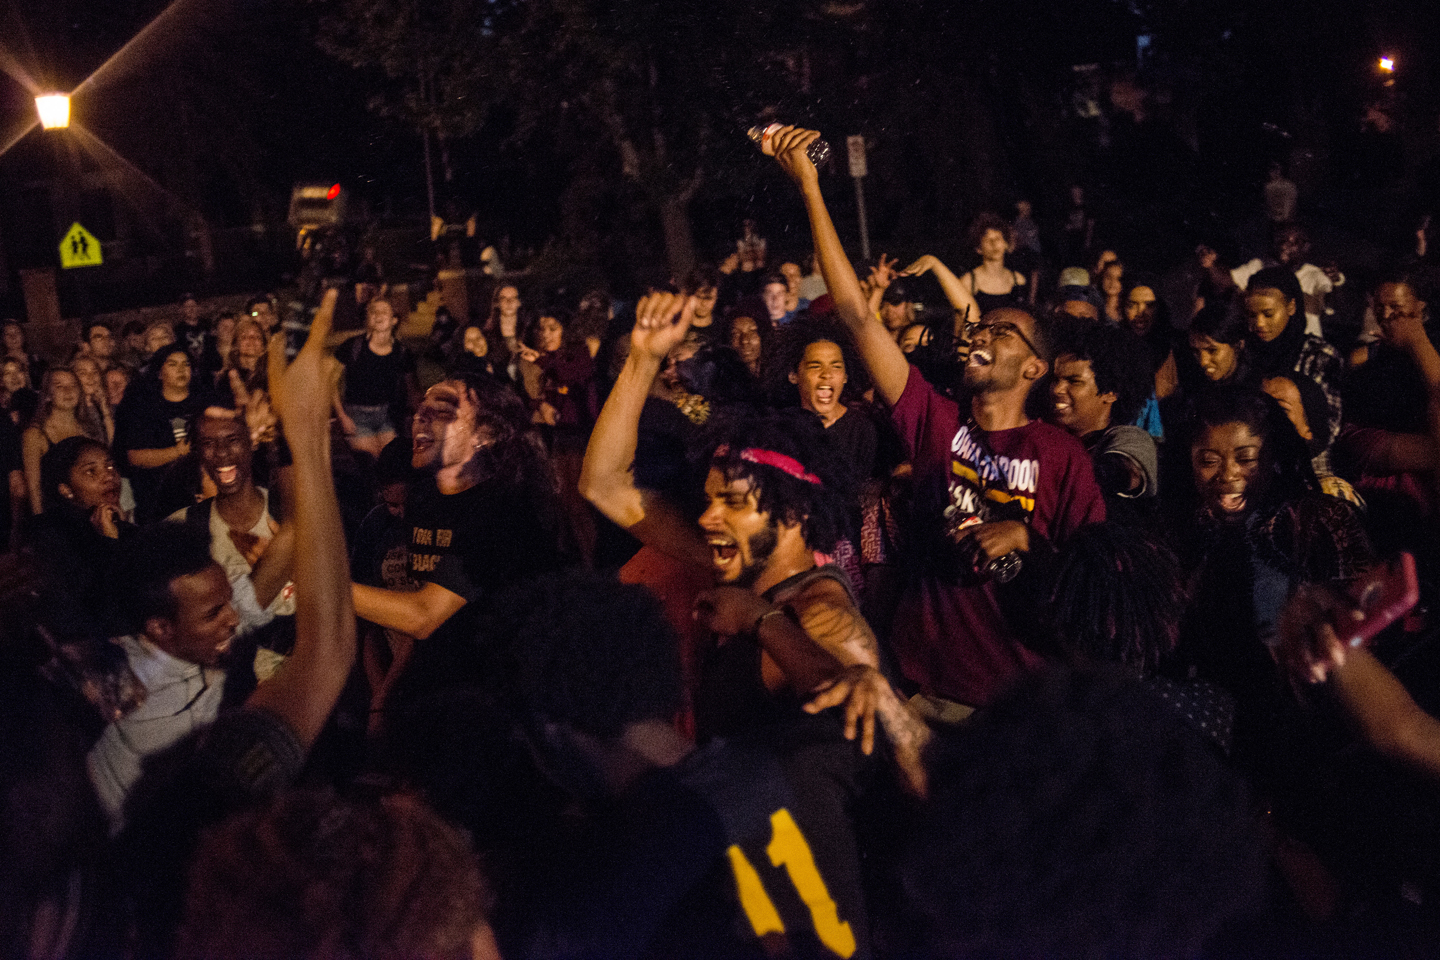 Protestors dance outside the Governor's Mansion on July 10, 2016 in St. Paul, Minnesota. The area outside the Governor's Mansion has been occupied by demonstrators since the night Philando Castile was killed by police on July 6, 2016.